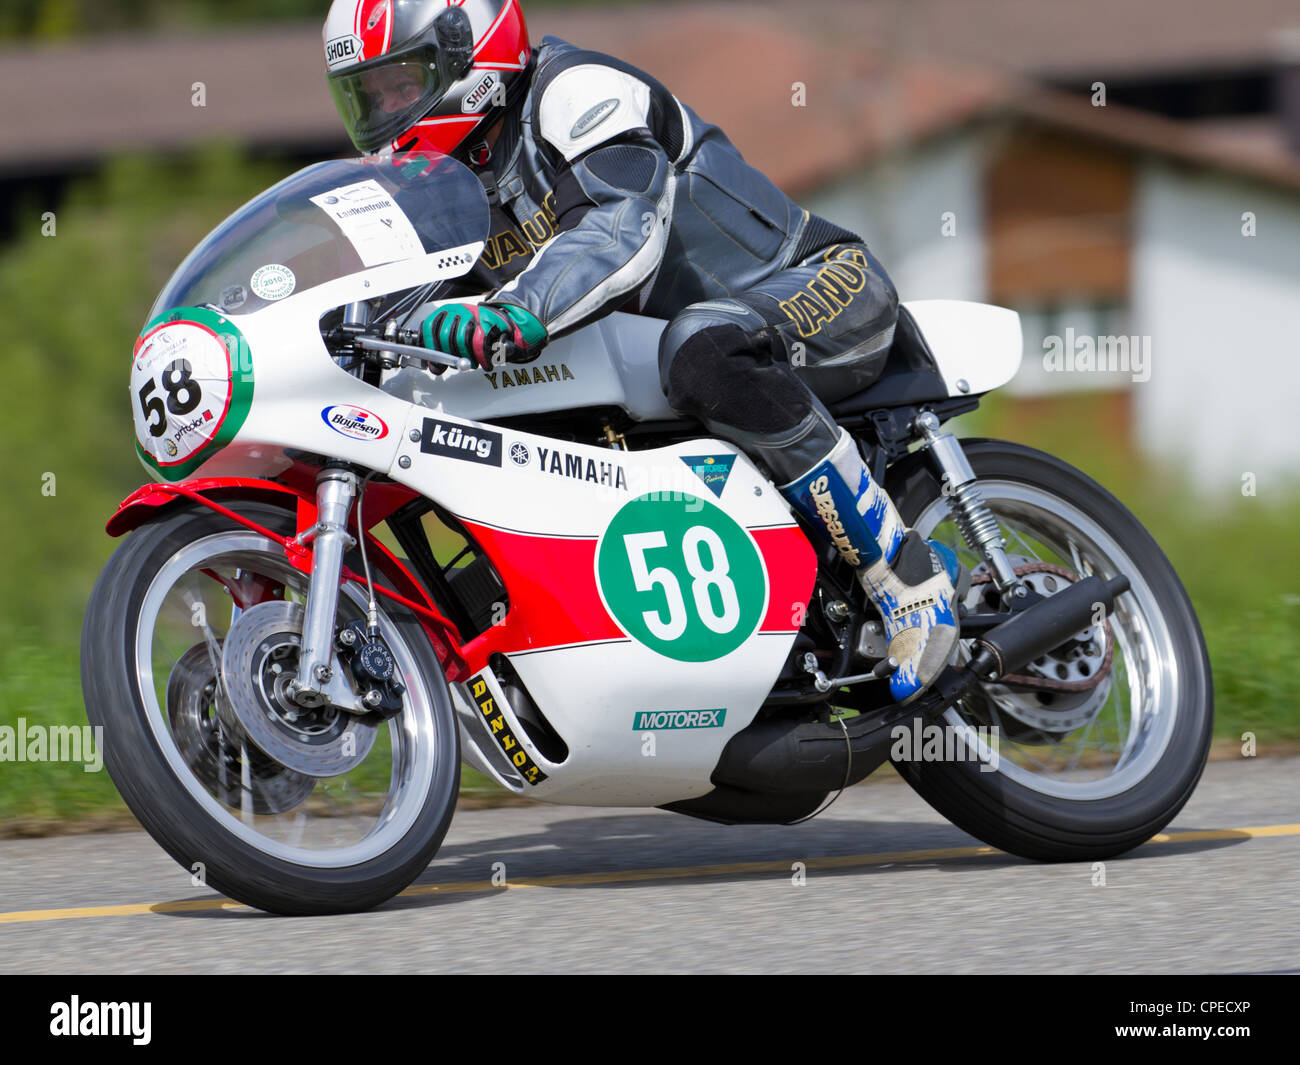 MUTSCHELLEN, SWITZERLAND-APRIL 29: Vintage motorbike Yamaha TD2 from 1970 on display at Grand Prix in Mutschellen, - Stock Image